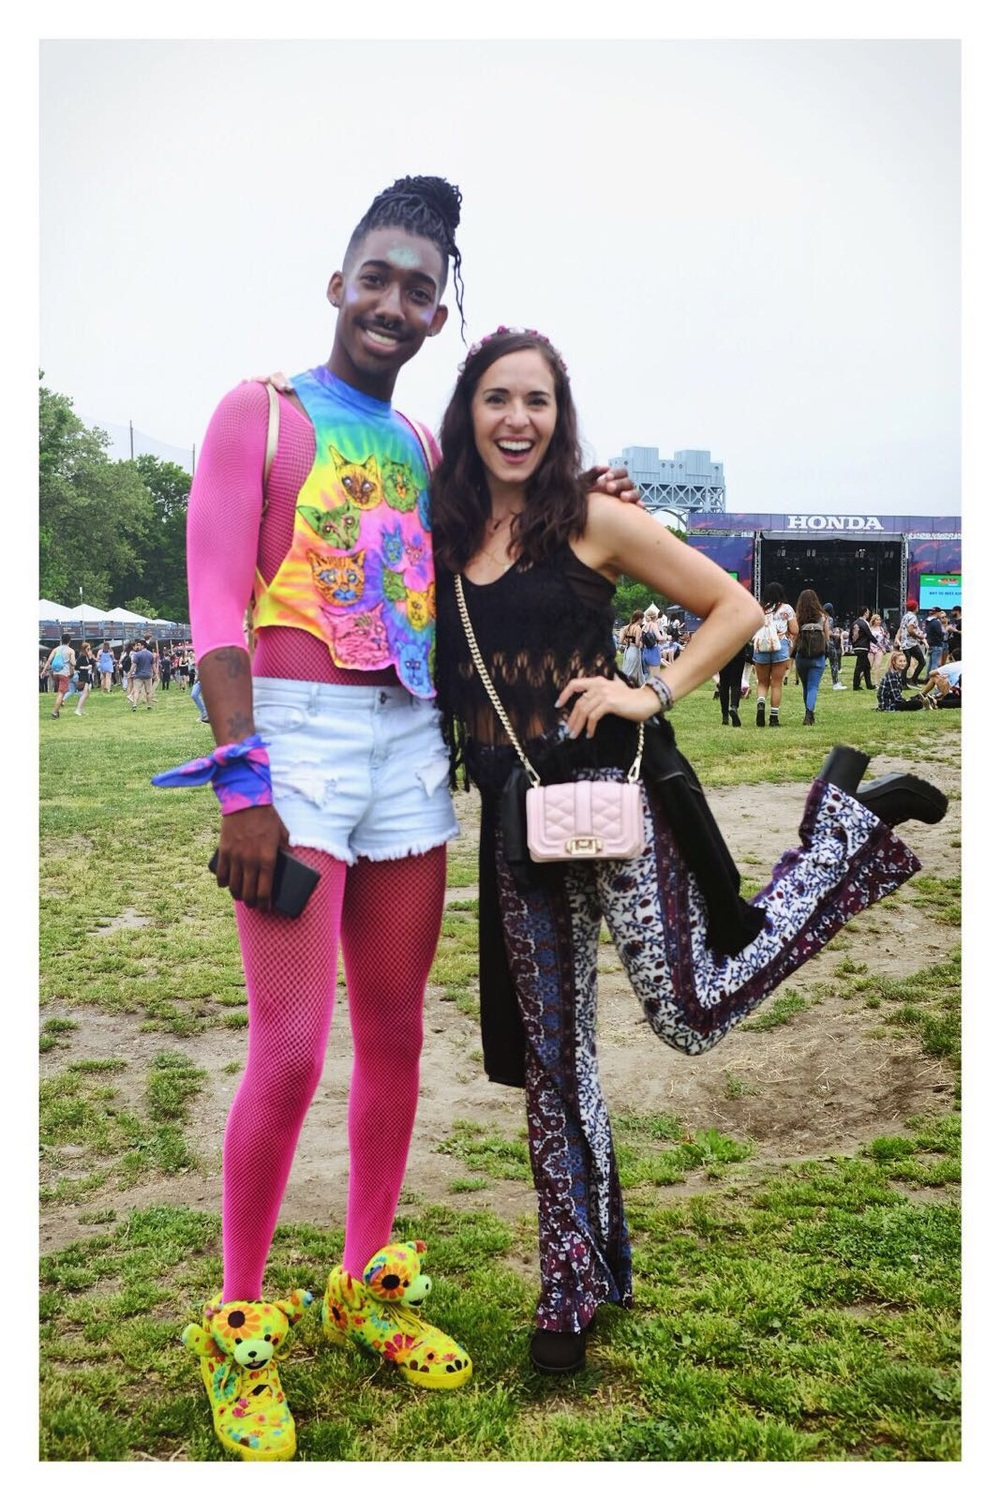 Having a ball at the Governors Ball music festival in NYC recently! Wearing 12th Tribe pants, Free People top, H&M platform booties, and a Rebecca Minkoff purse (the mini Love Crossbody).